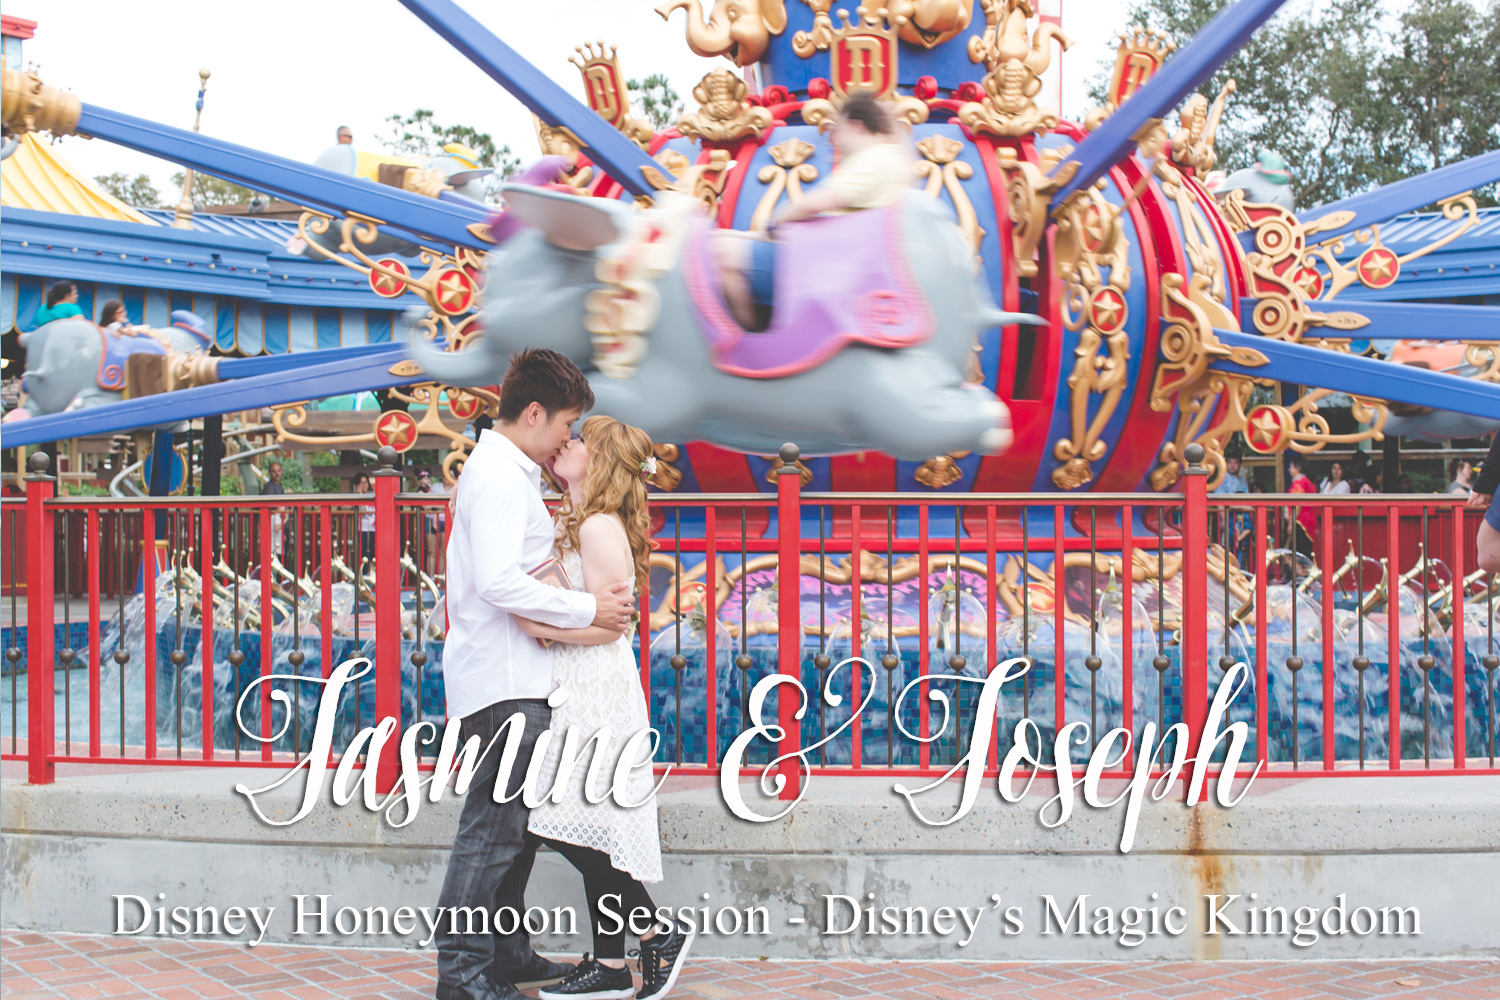 Disney Honeymoon Session - Disney Engagement Photos - Disney Wedding Photographer - Destination Orlando Wedding Photographer - Jaime DiOrio - Dumbo ride.jpg